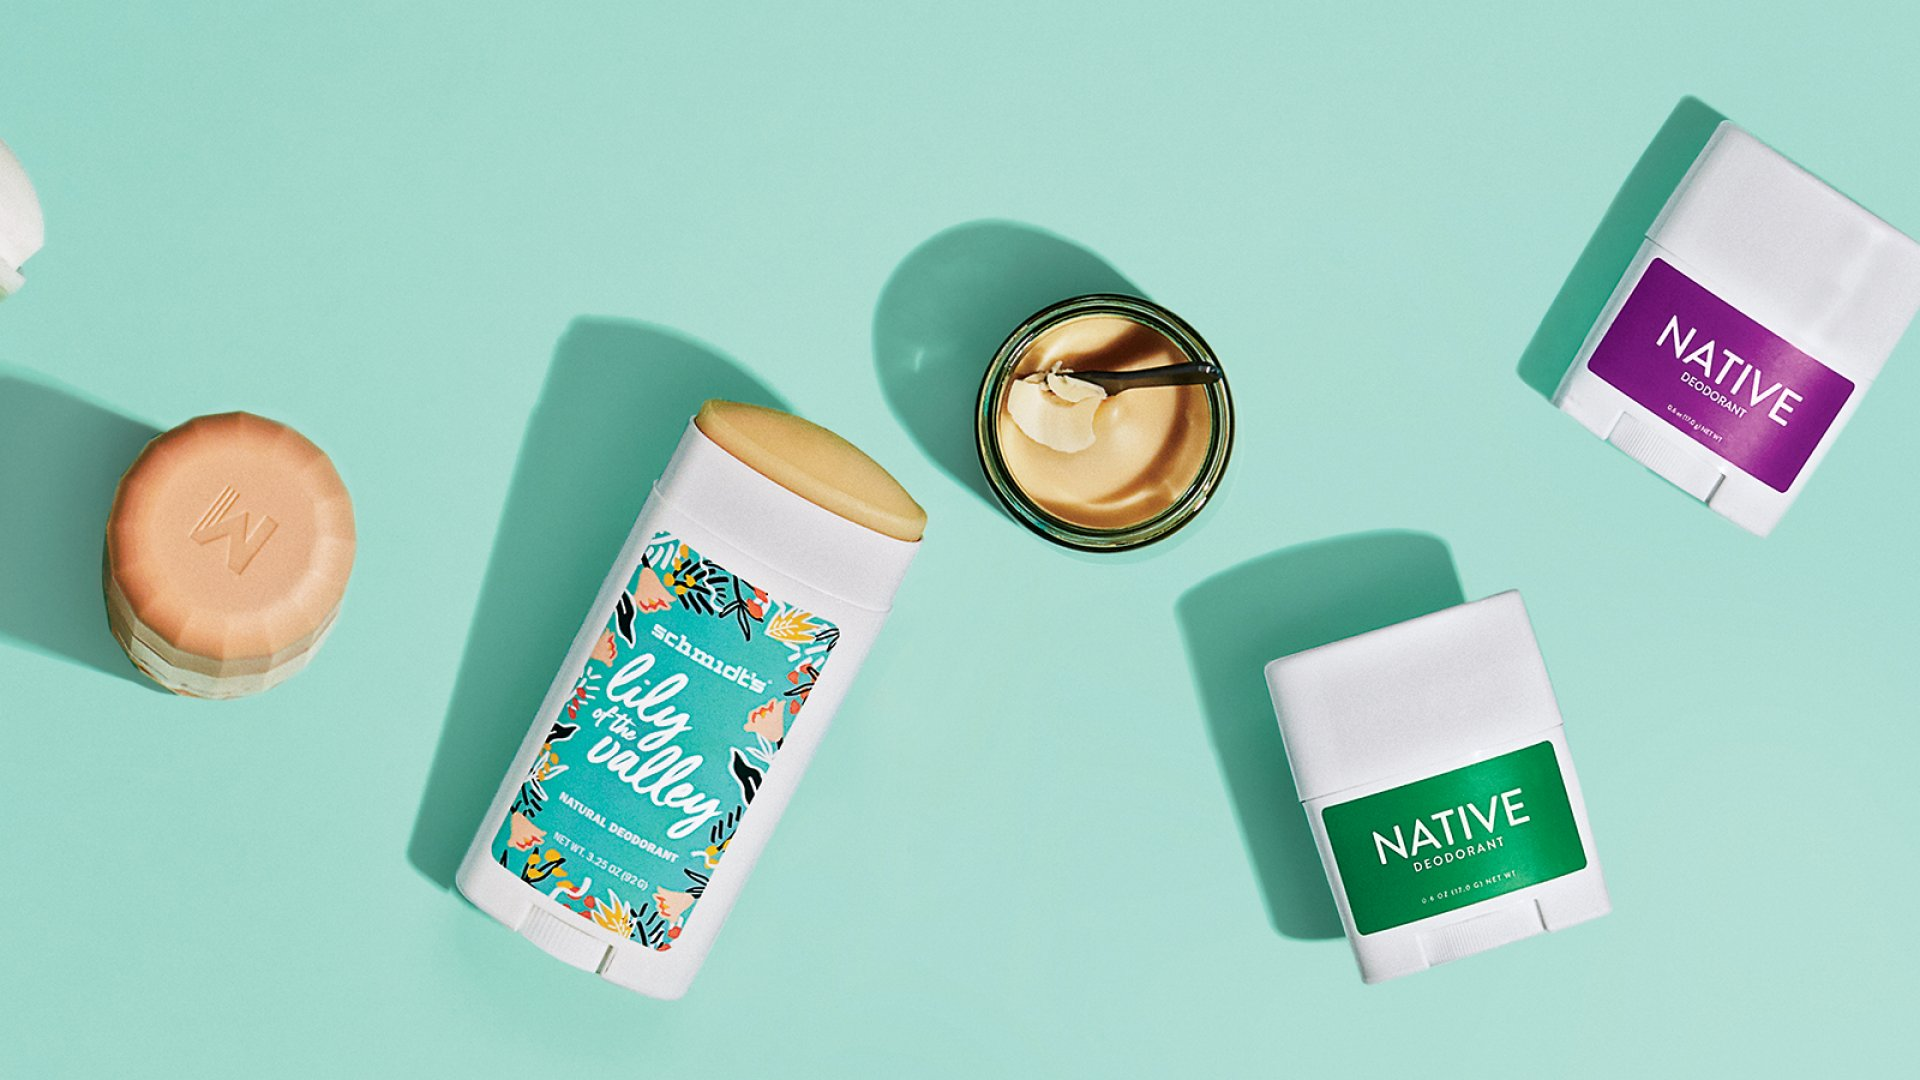 Meet 3 Founders Who Helped Turn Deodorant Into the Hottest Skin Care Product of 2019